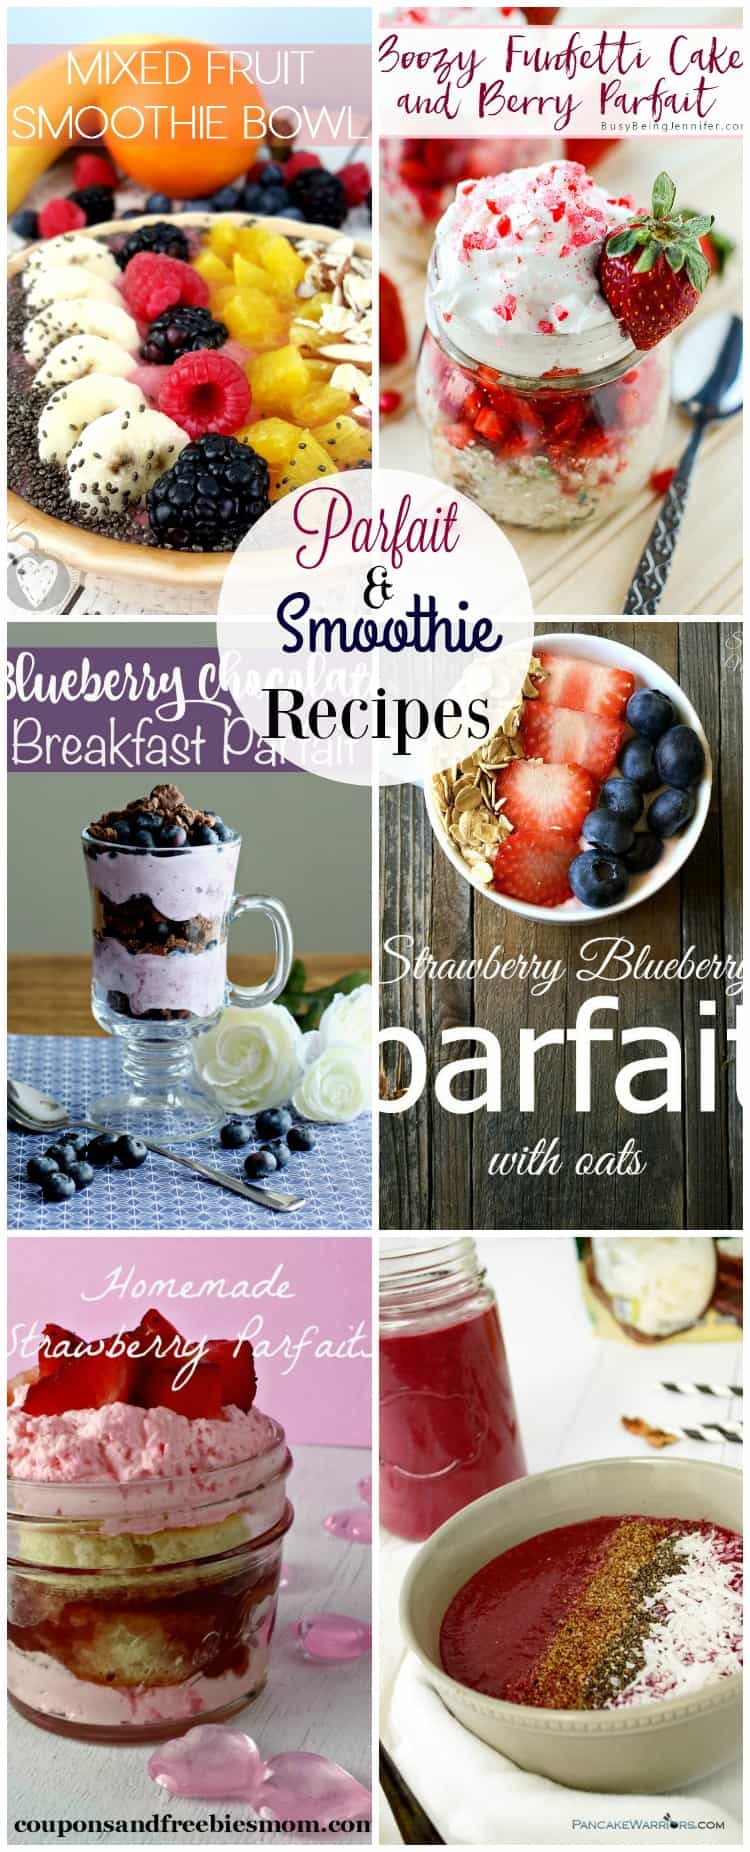 Parfait & Smoothie Recipes make the perfect afternoon snack packed with healthy ingredients.